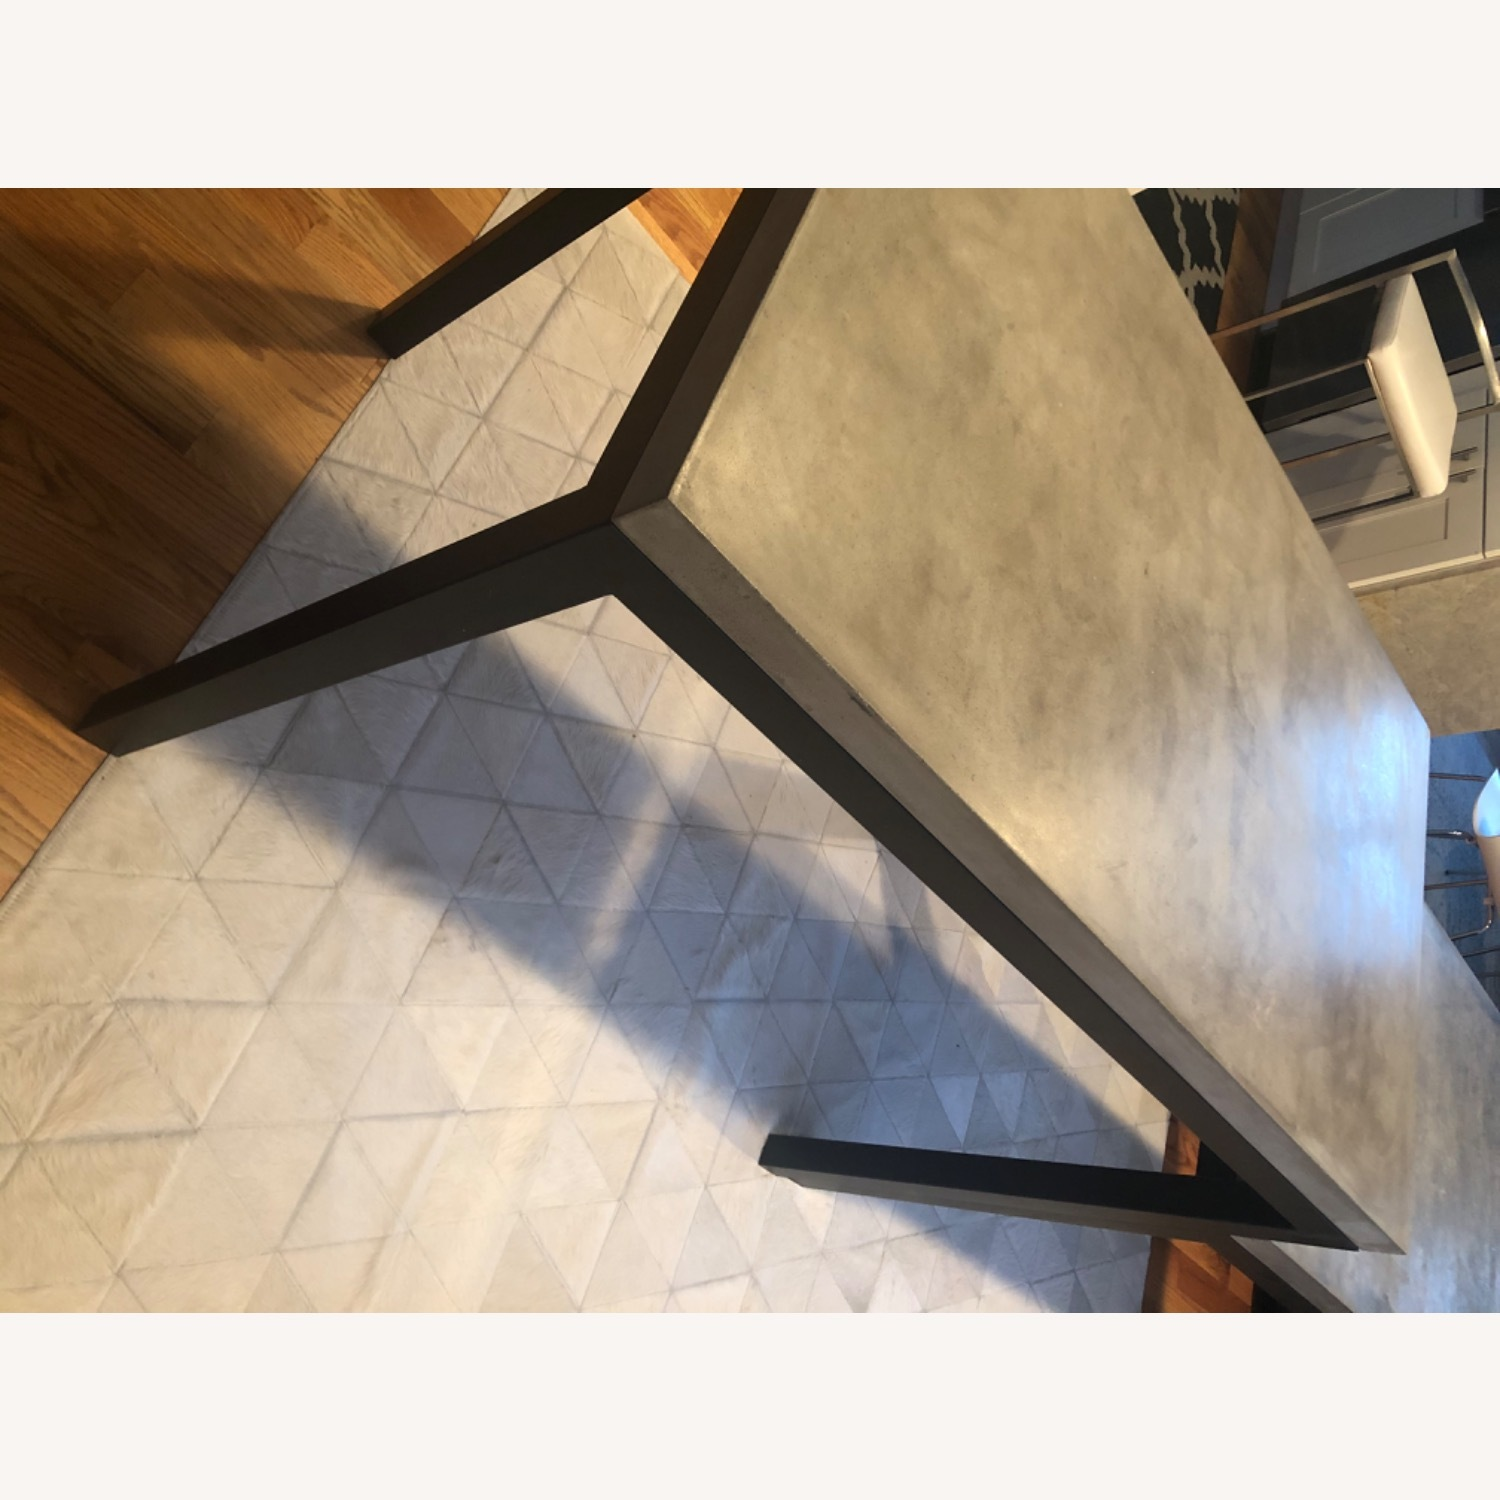 Crate & Barrel Concrete High Dining Table - image-12